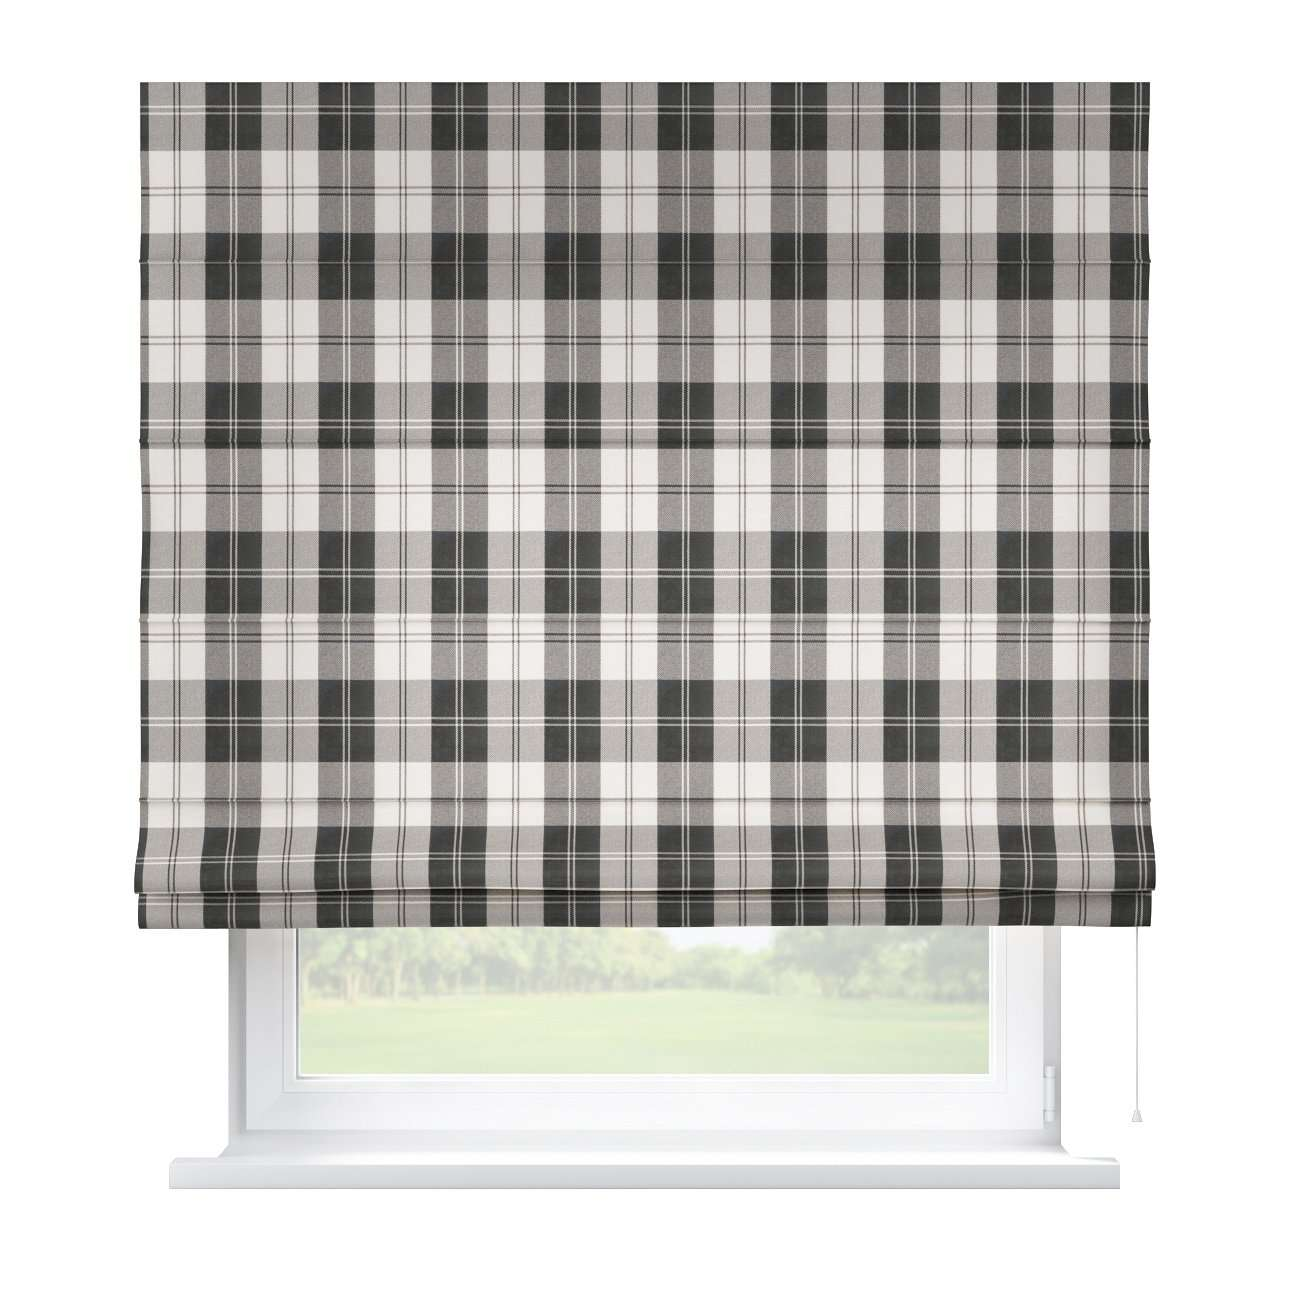 Capri roman blind 80 x 170 cm (31.5 x 67 inch) in collection Edinburgh , fabric: 115-74